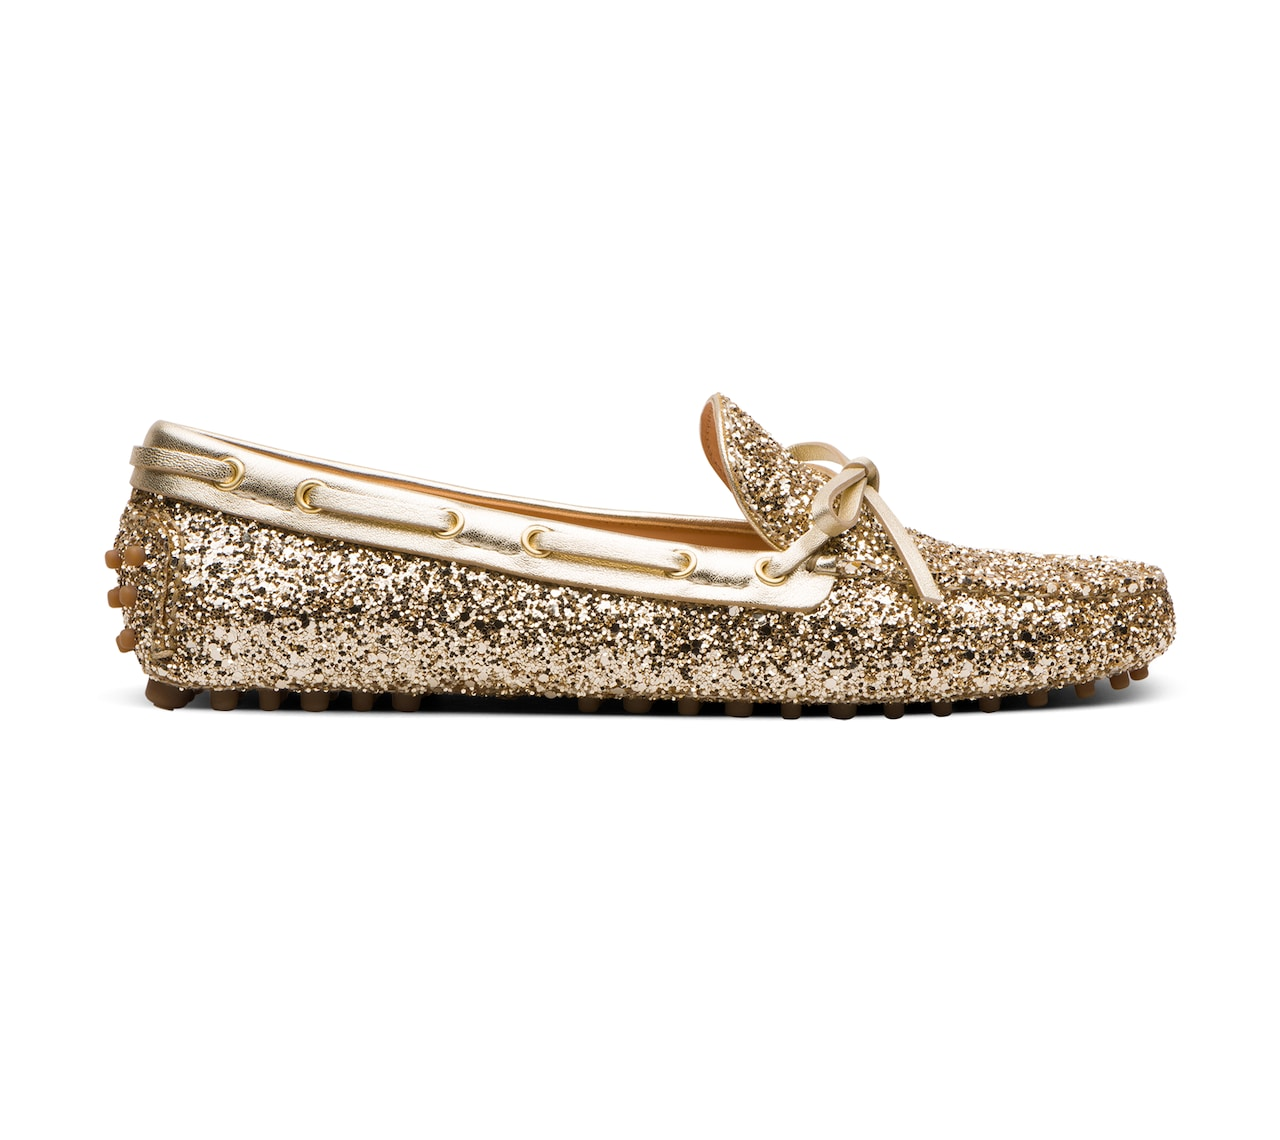 DRIVING SHOES GLITTER ORO/ARGENTO